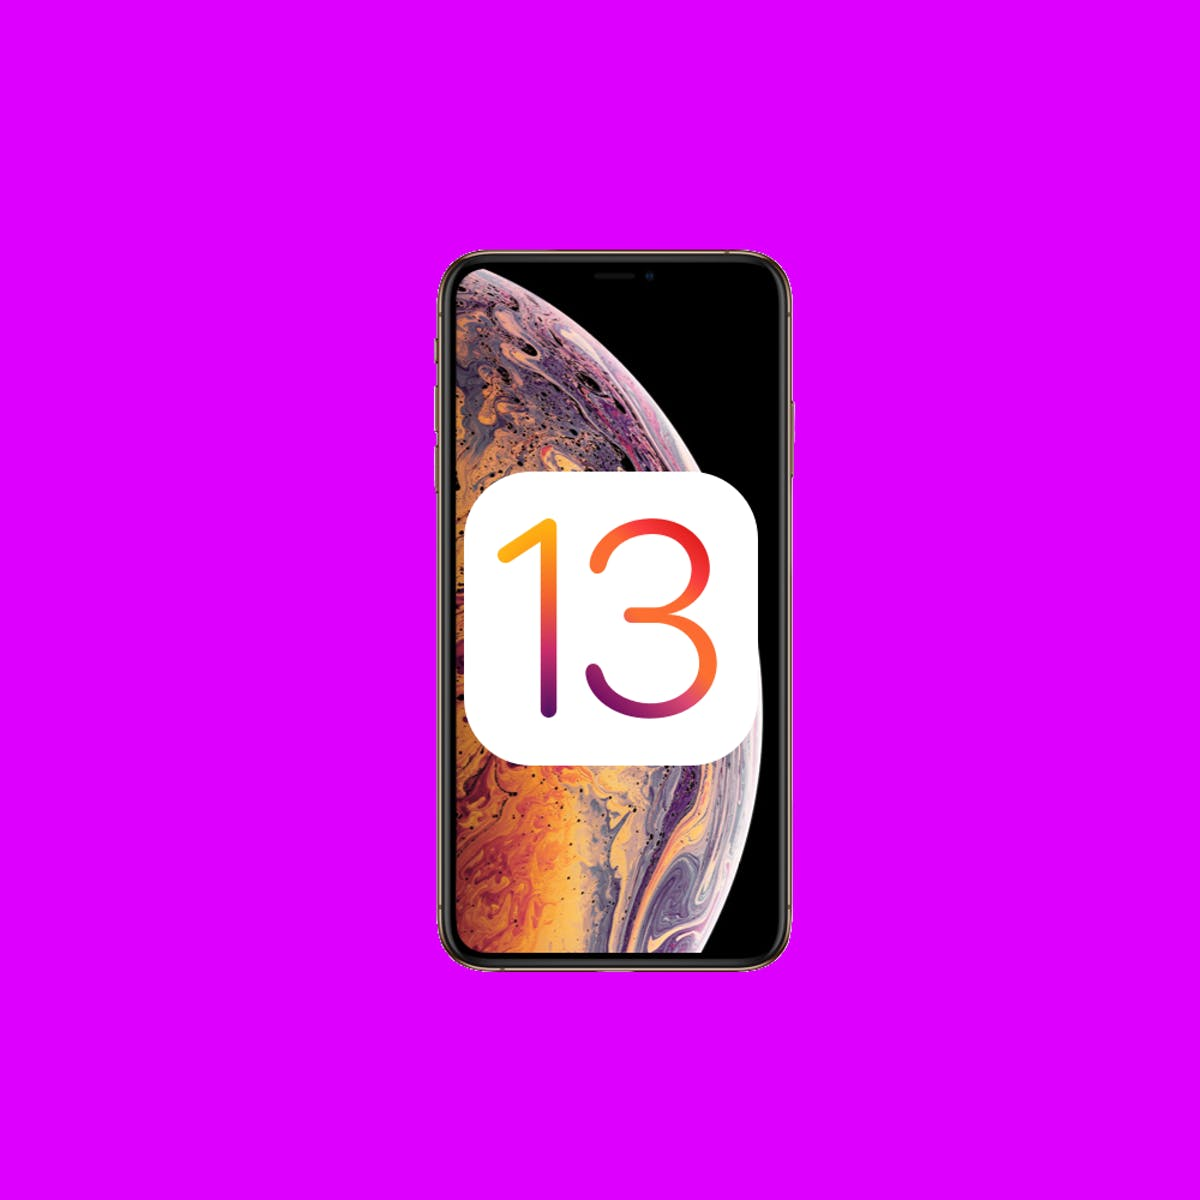 iOS 13: 5 features you'll love in Apple's free iPhone software update